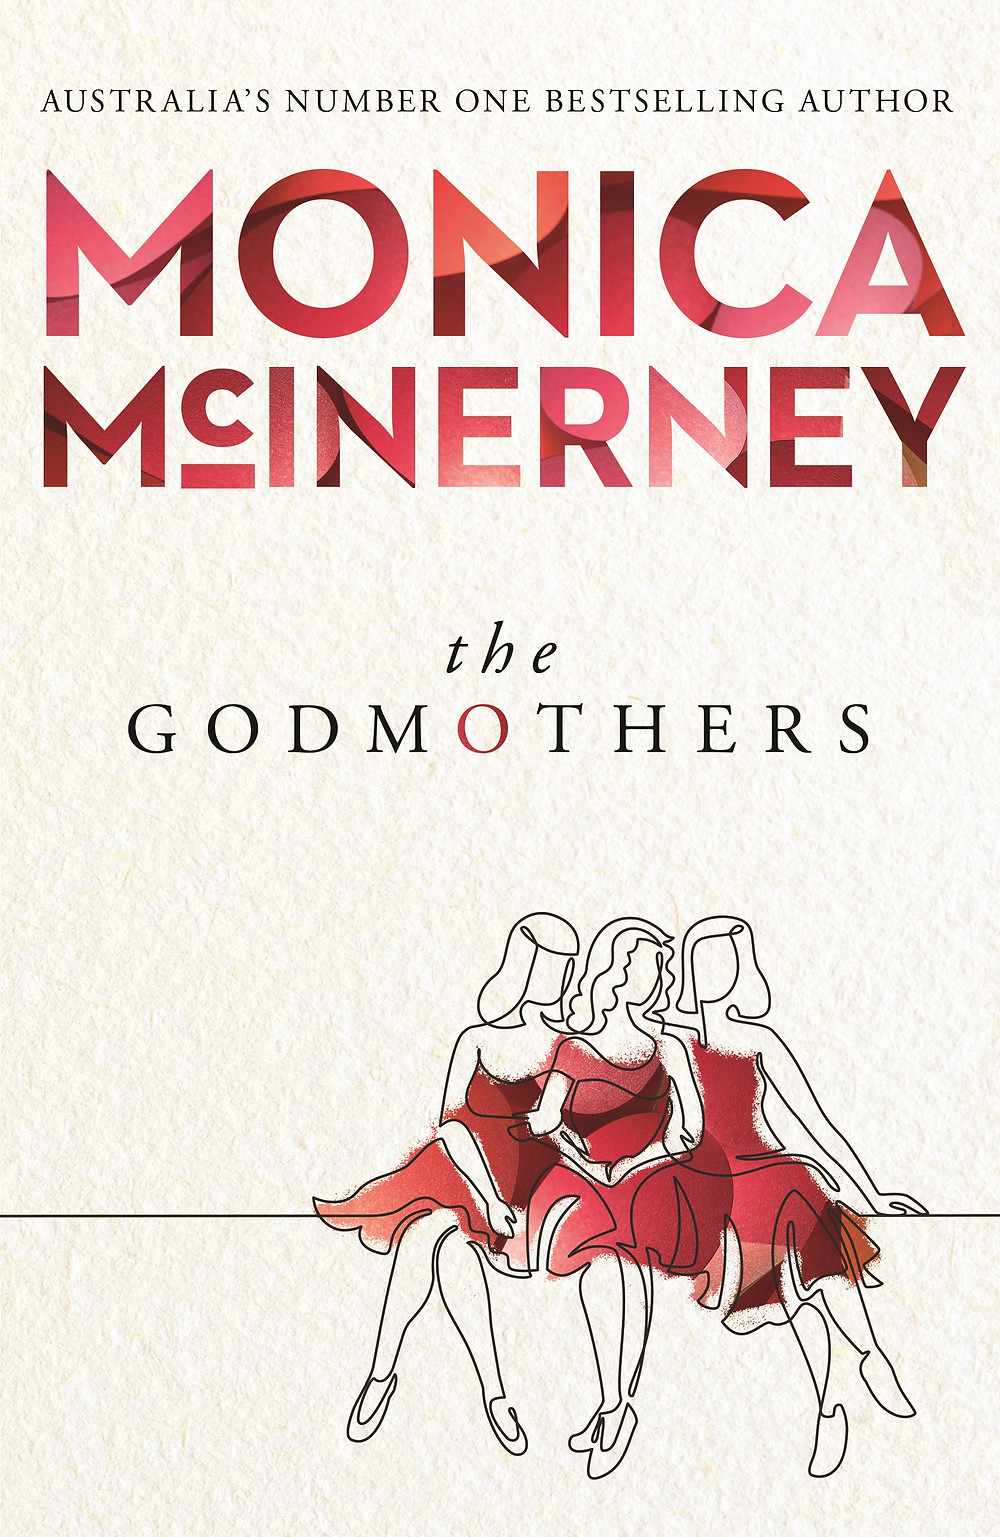 The Godmothers - Review by Claudine Tinellis